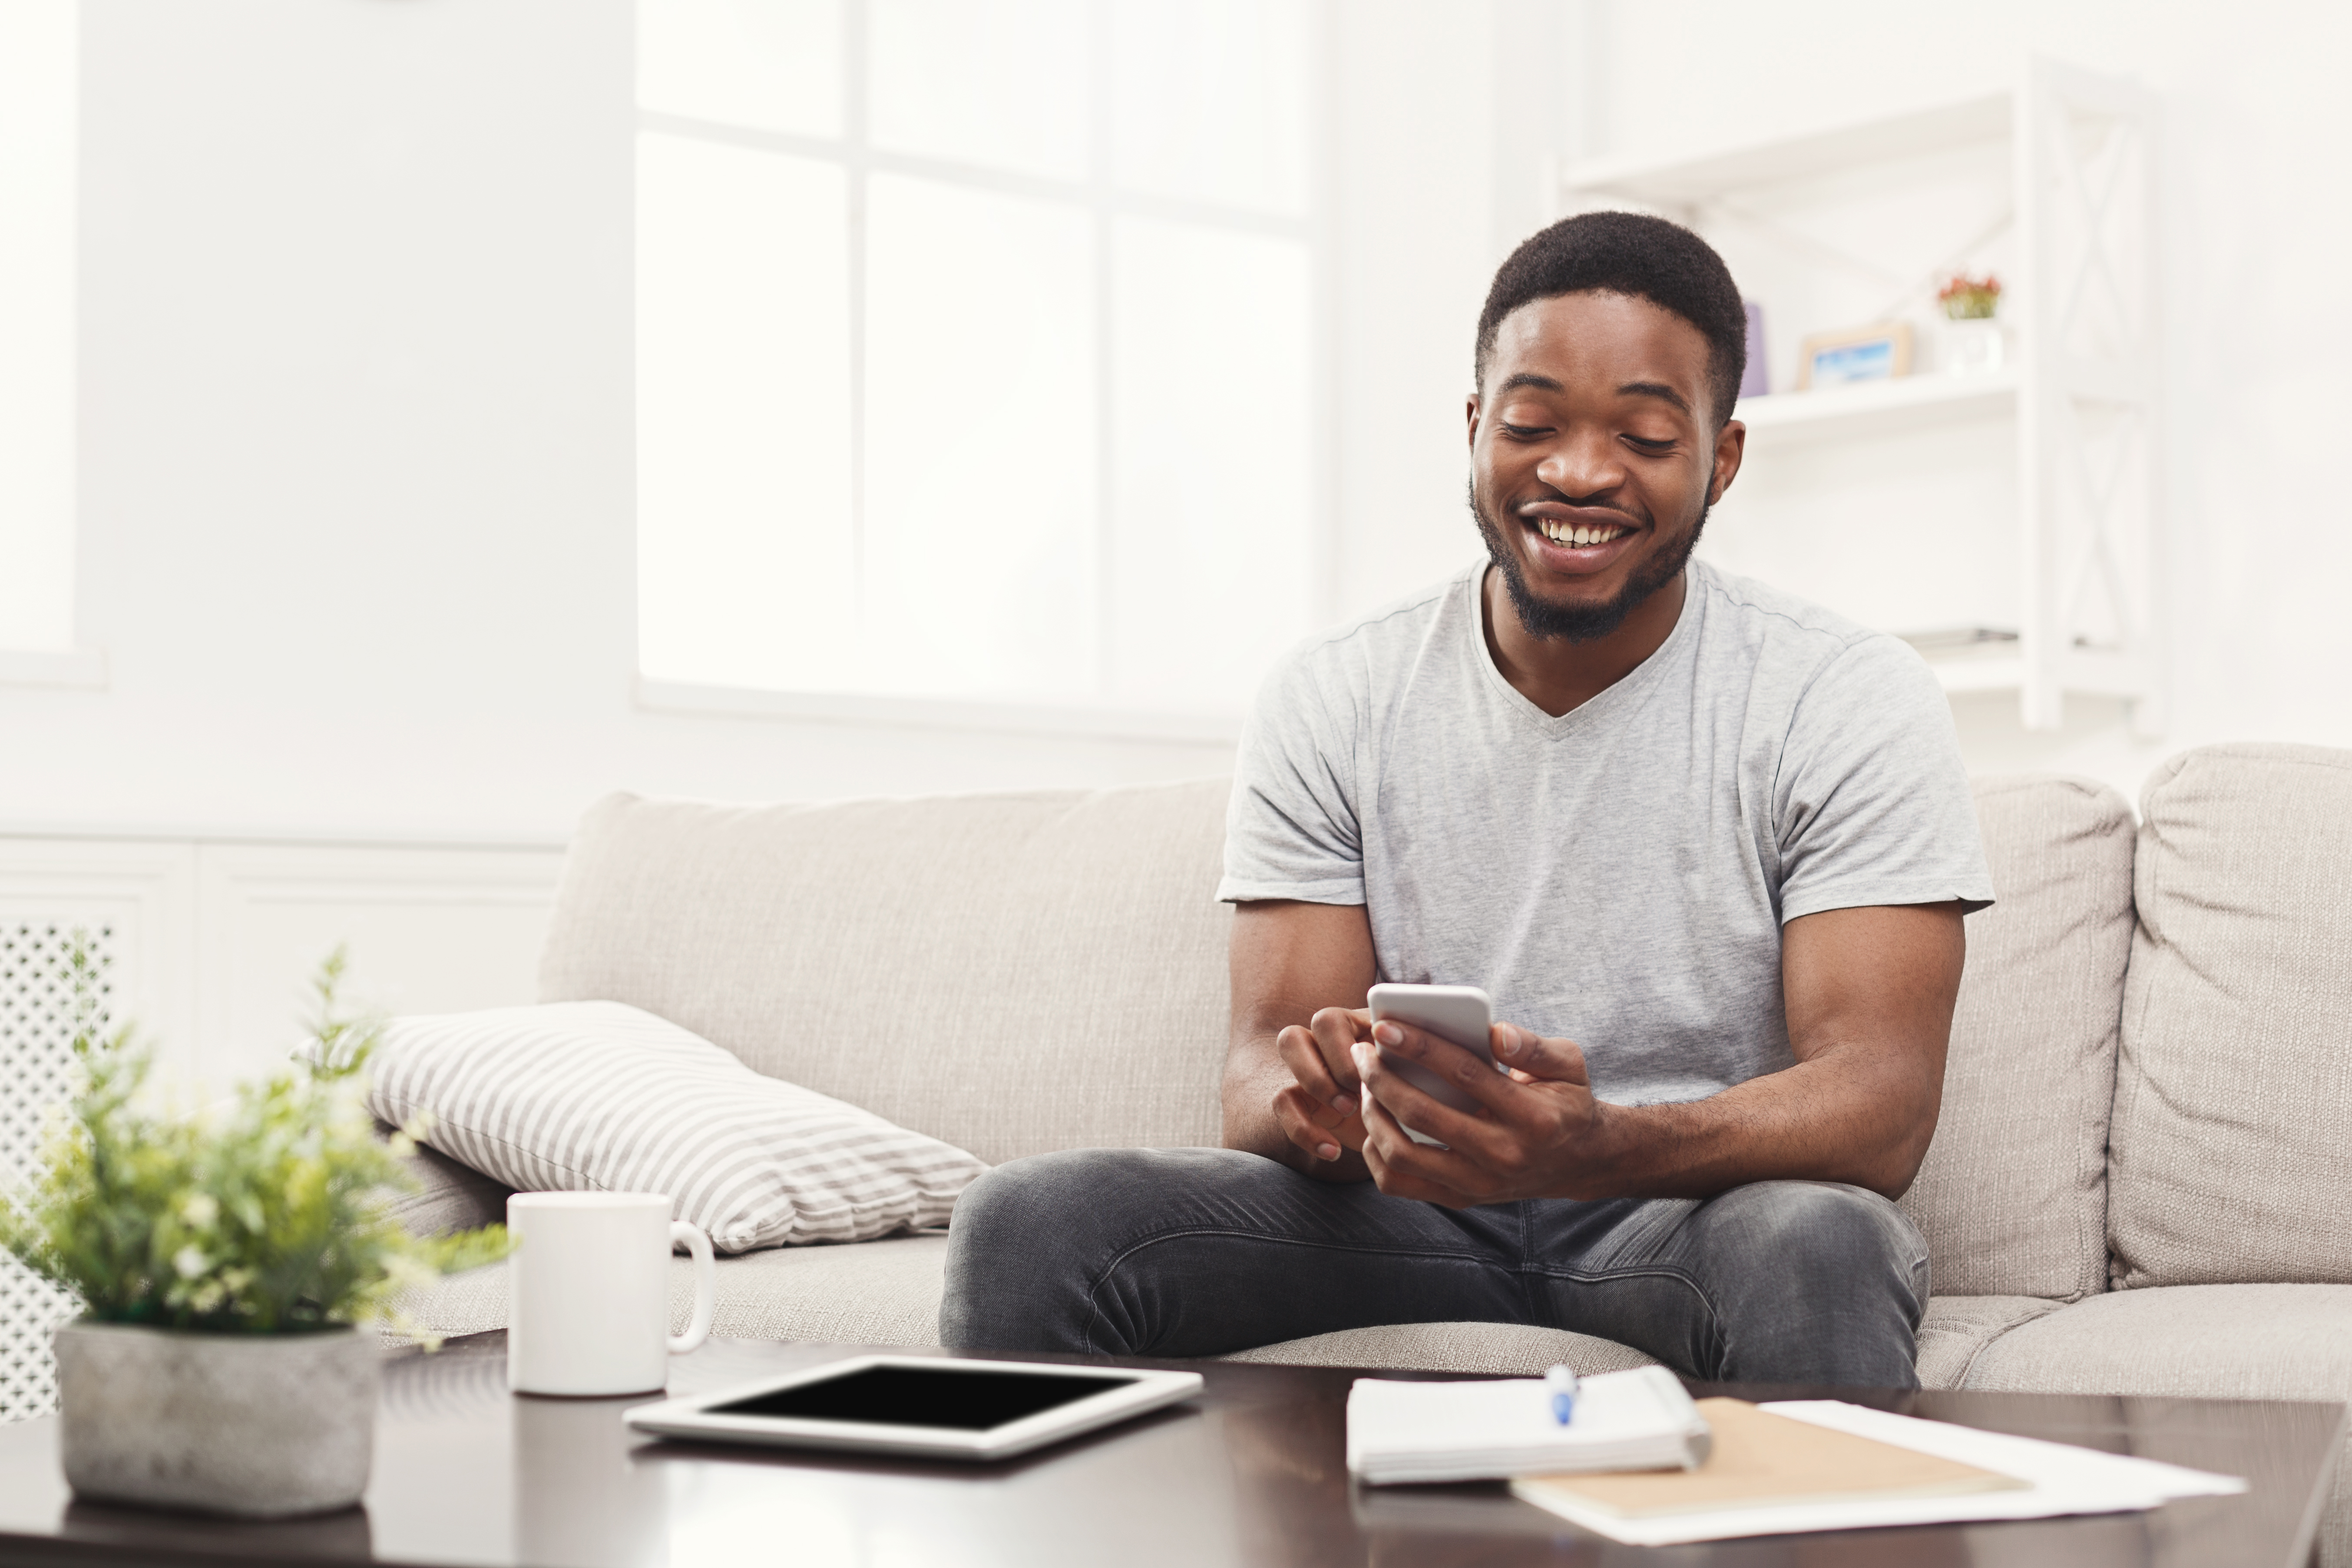 Man on couch at home checking out his phone